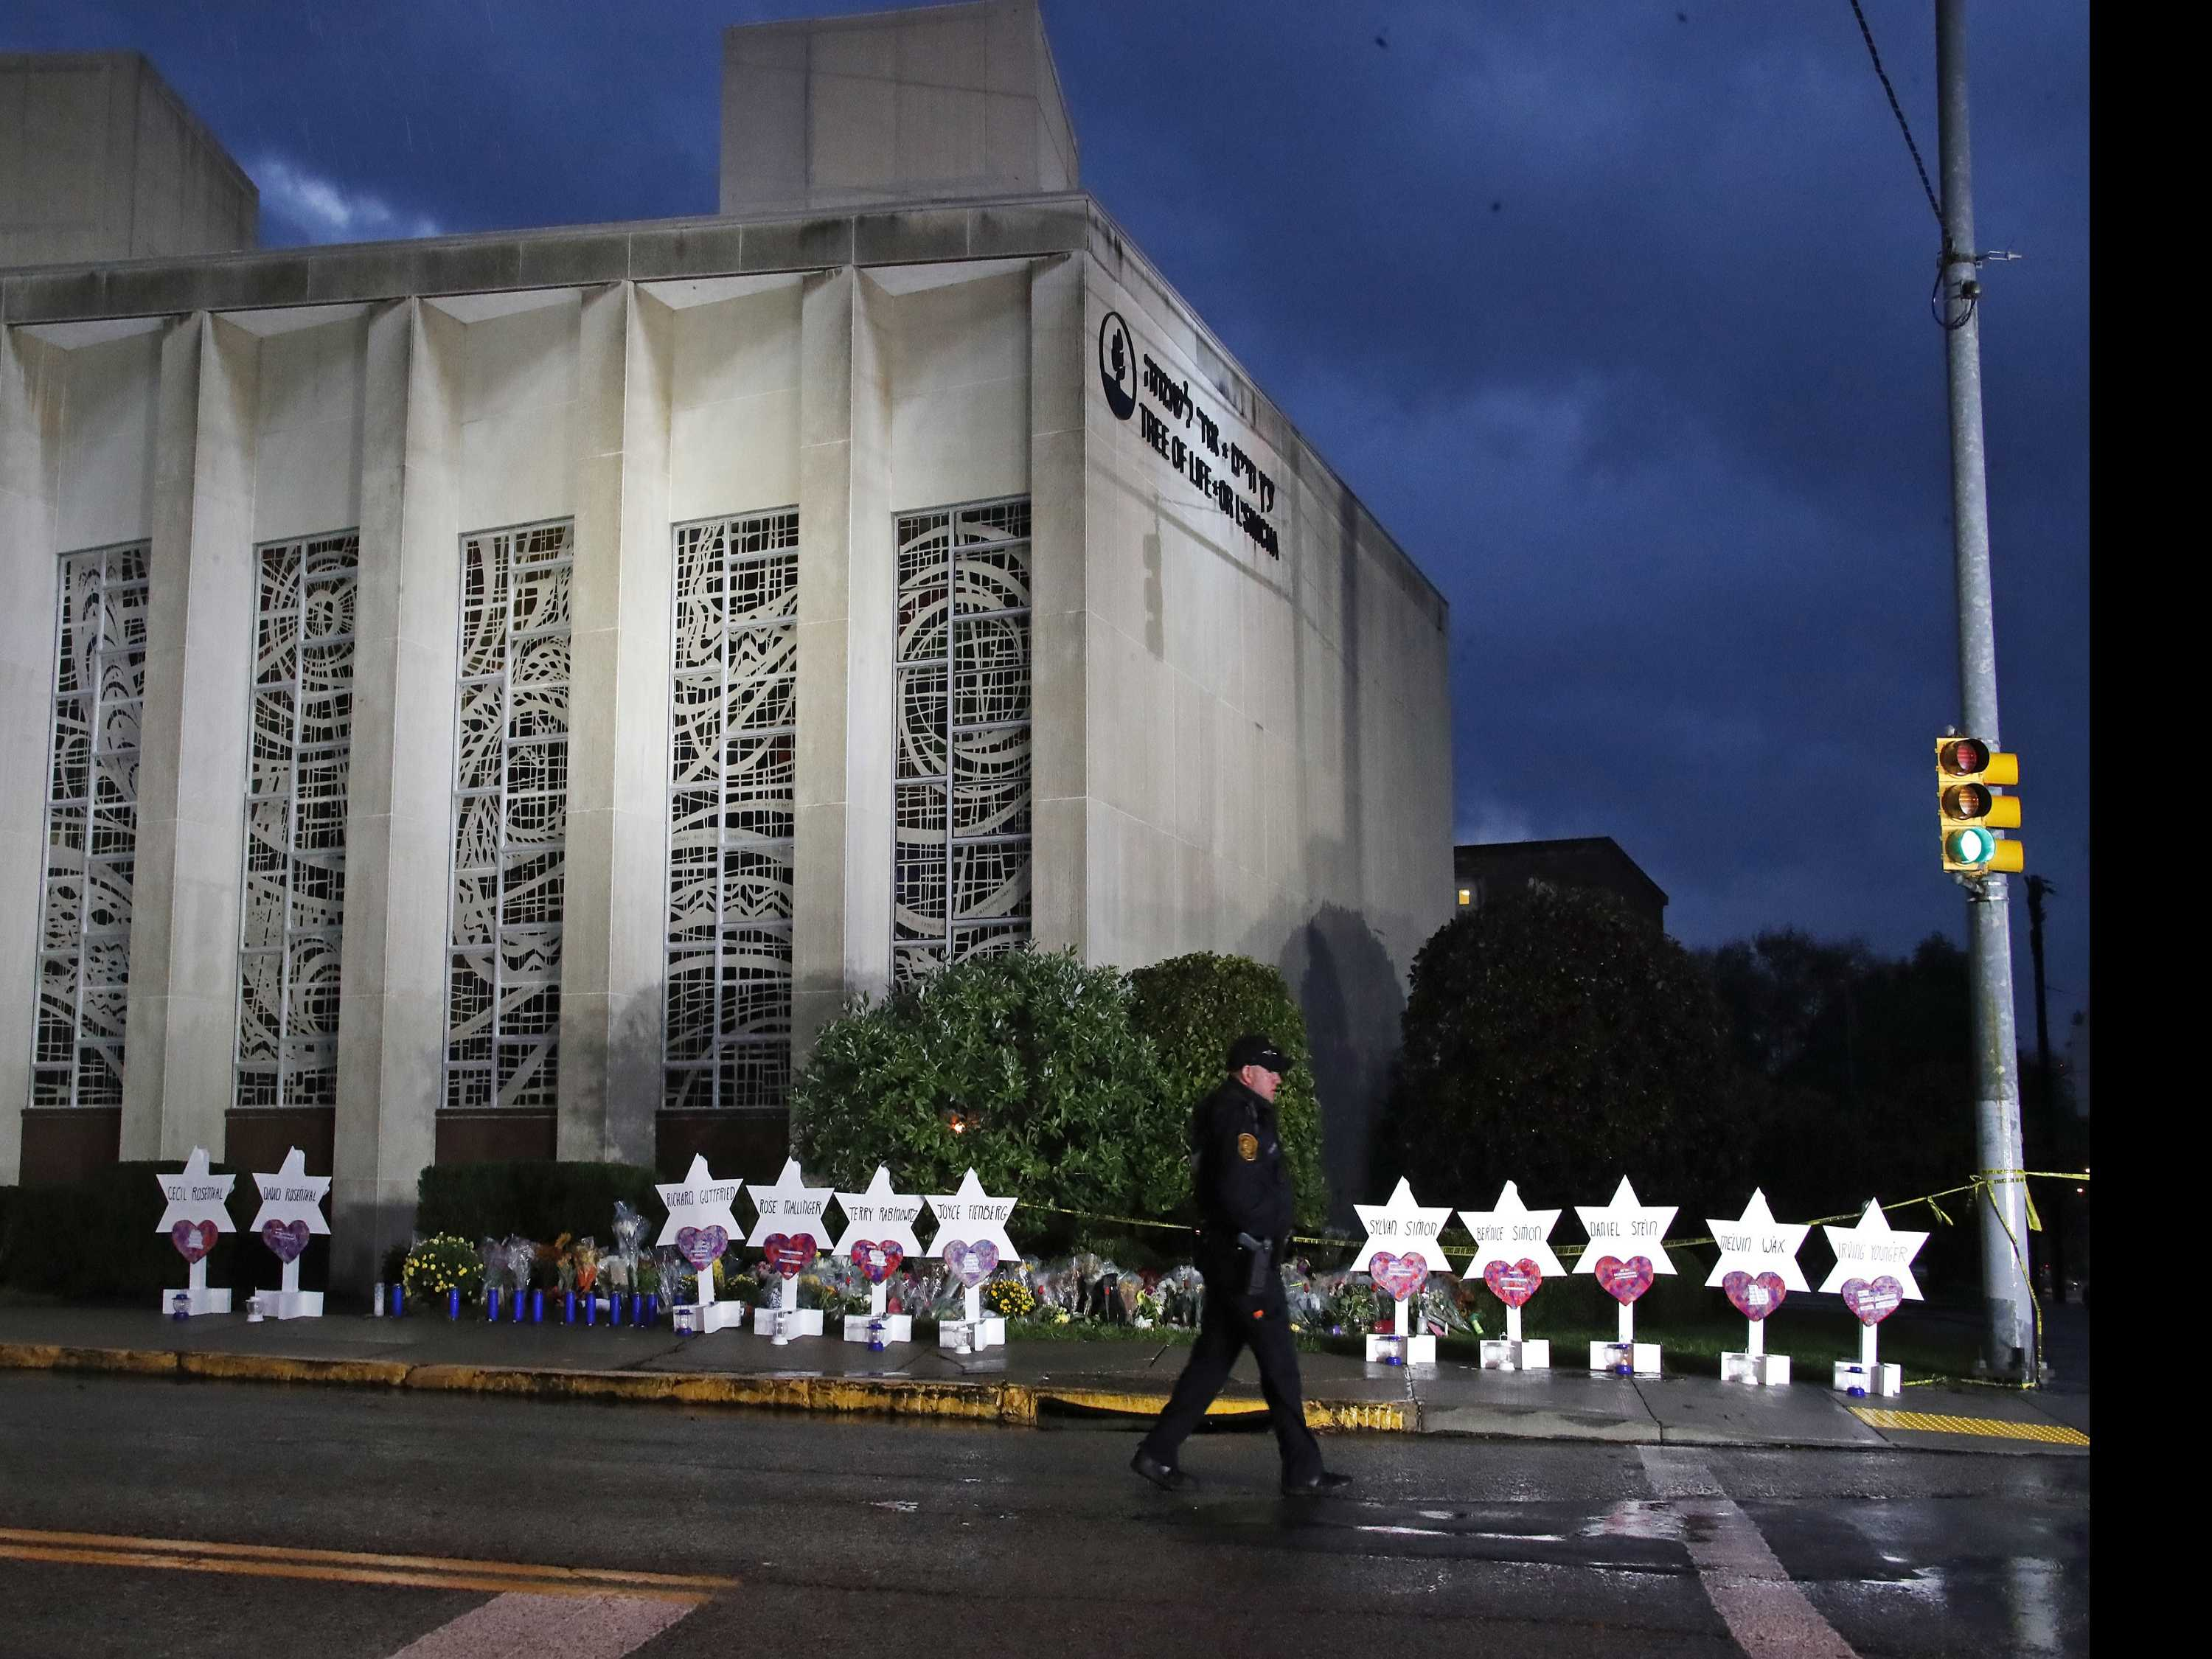 Online Rants by Would-Be Shooters Create Dilemma for Police